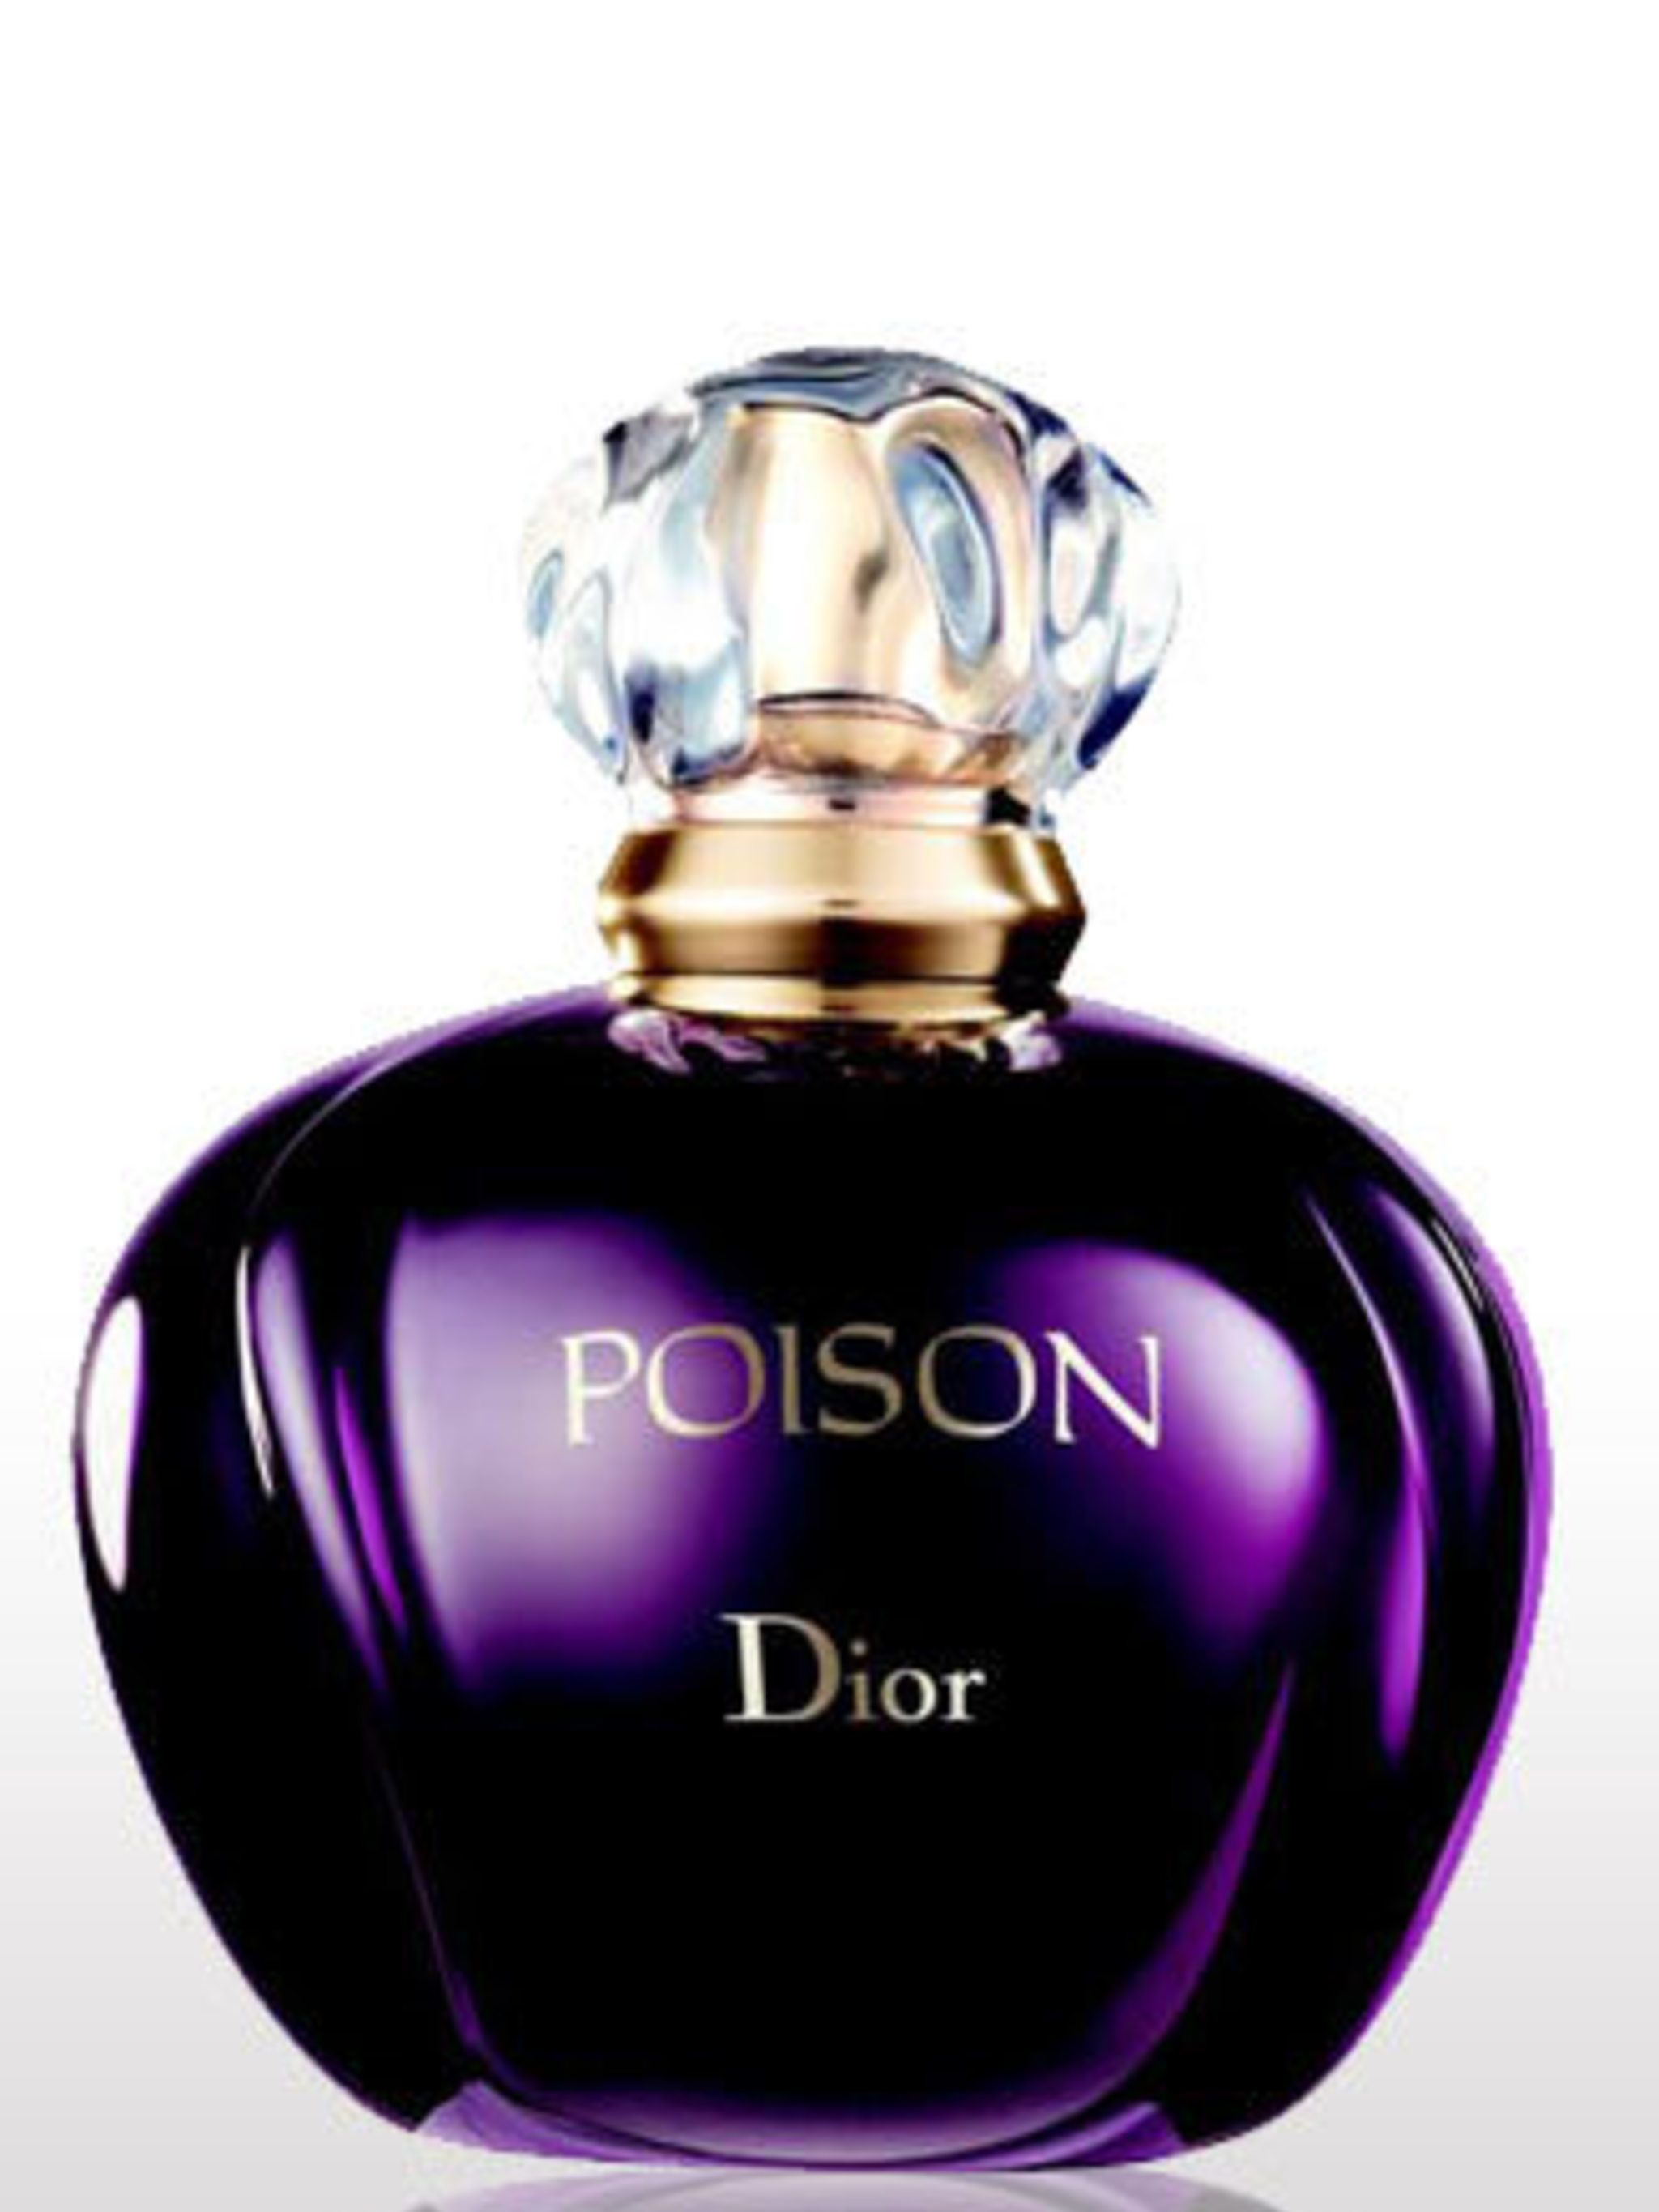 <p>'This heady, rich fragrance is what my mother used to wear when I was growing up so it's particularly evocative and brings back lovely memories of smelling it on her warm skin.' Georgia Collins, Acting Beauty Editor</p><p>Dior Poison, from £35.50 for 3